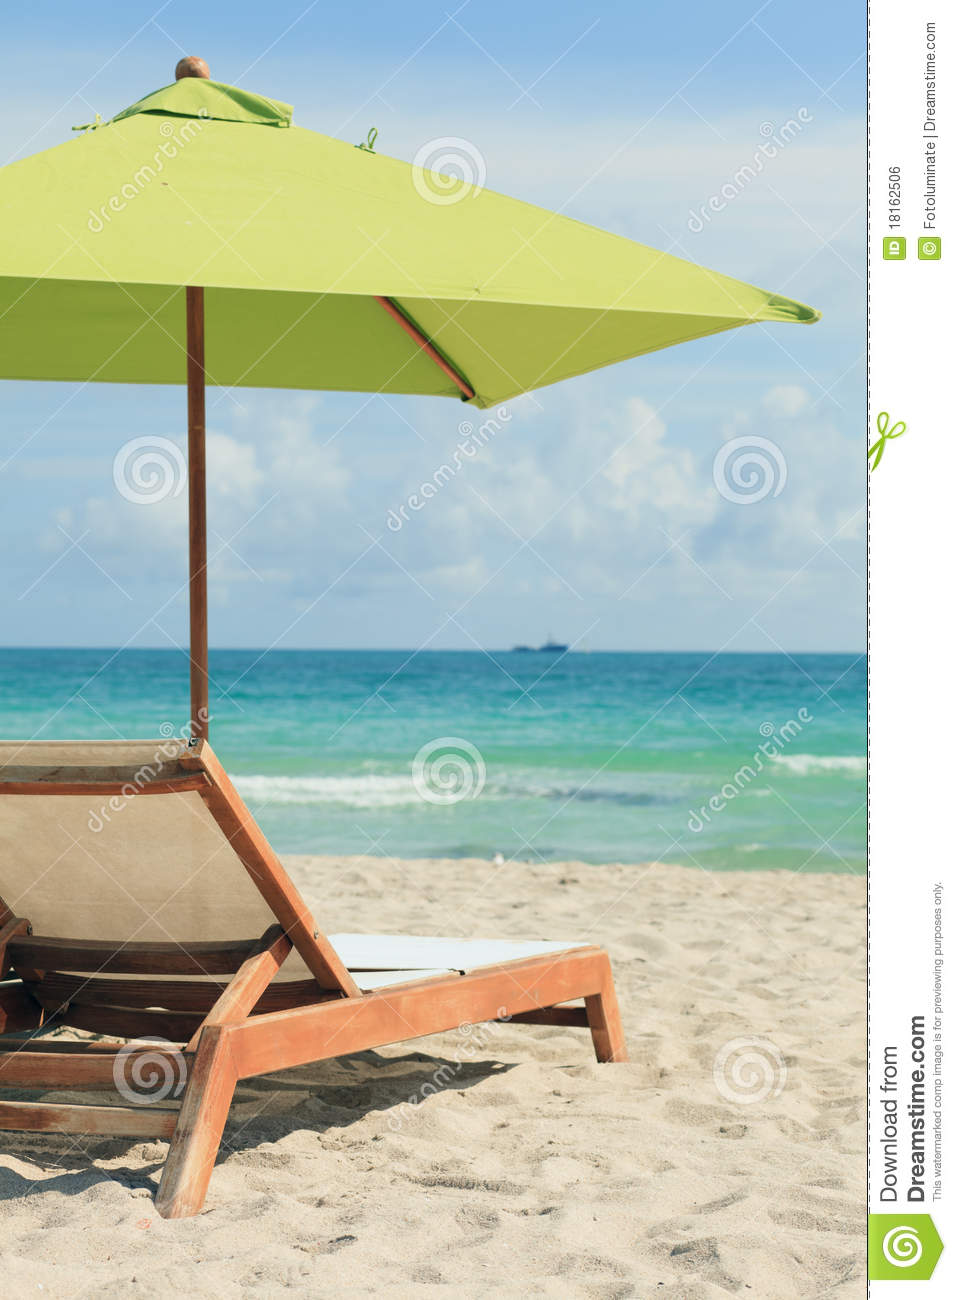 Beach umbrella and chair - South Beach Umbrella And Lounge Chair Royalty Free Stock Image